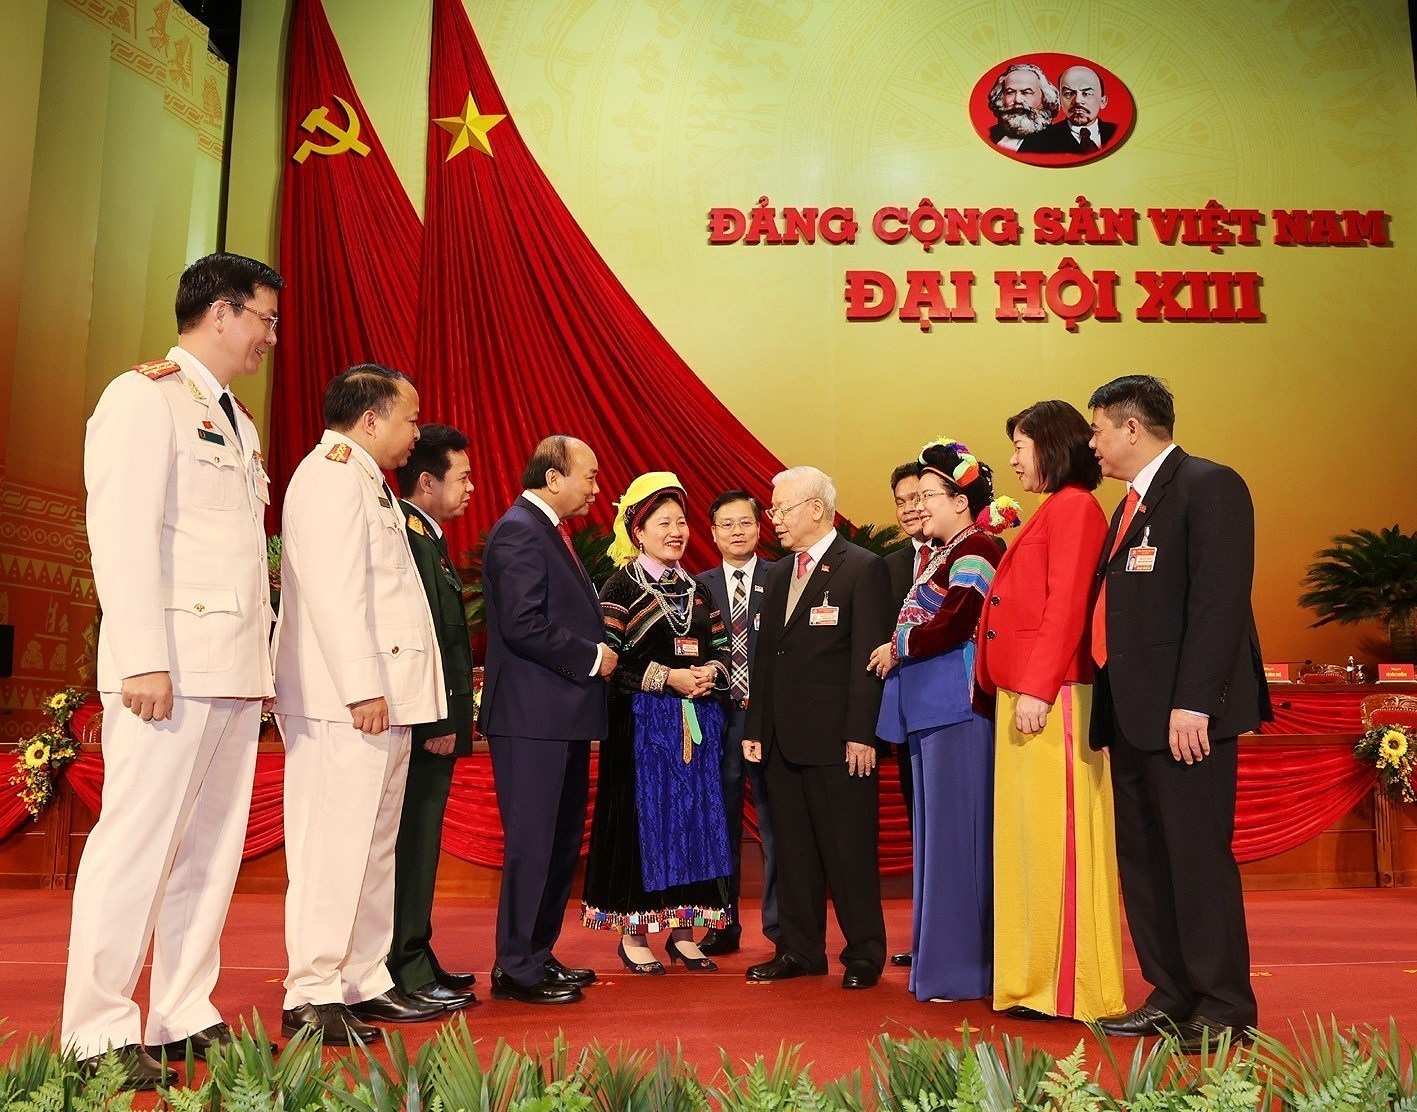 National Party Congress continue discussions on personnel work hinh anh 9